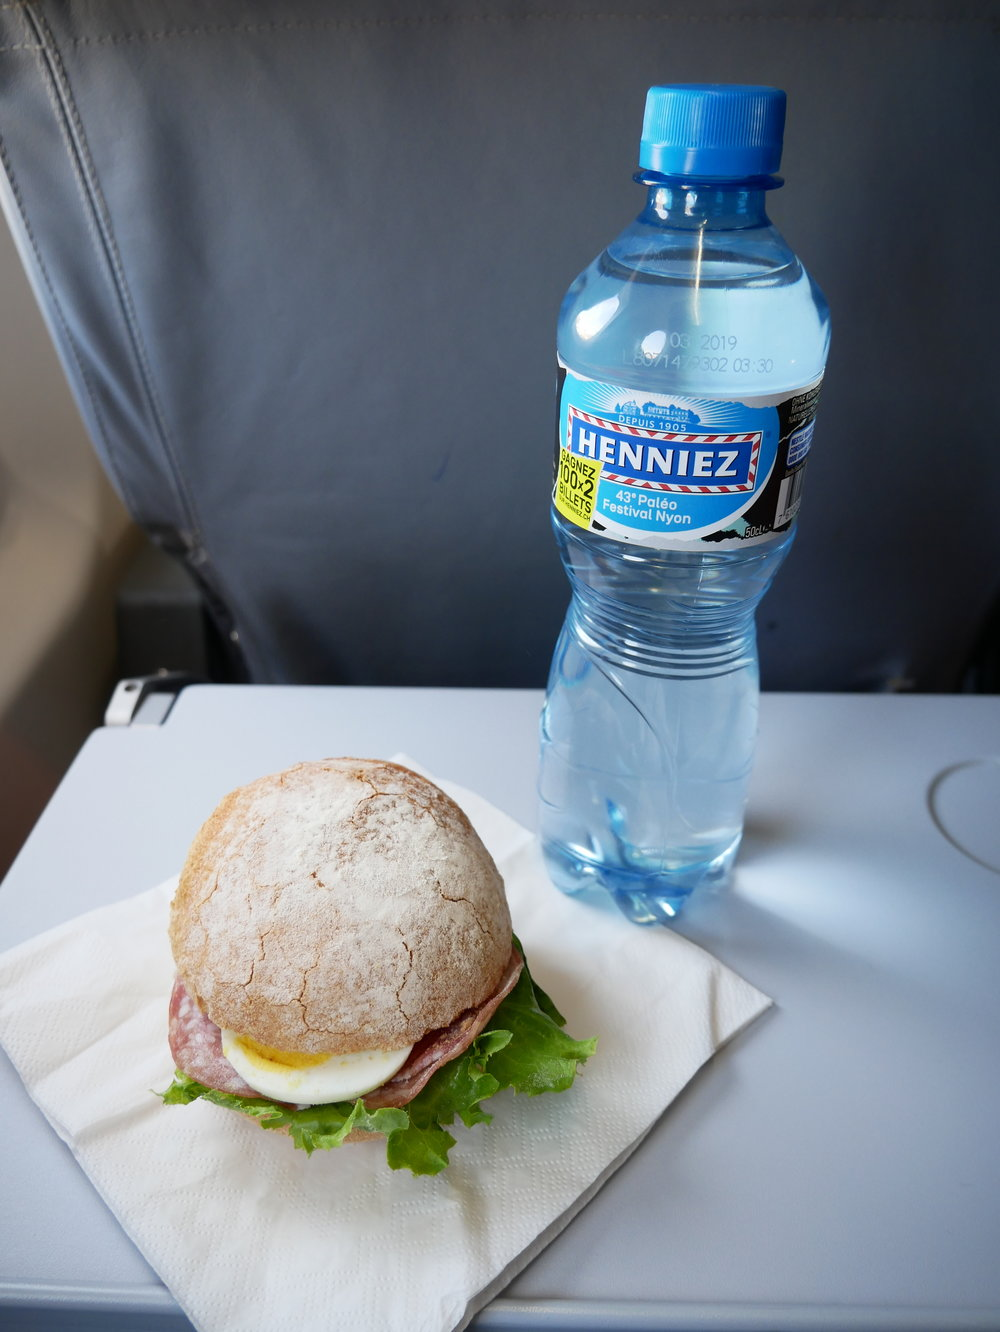 NZZ sandwich and water on board